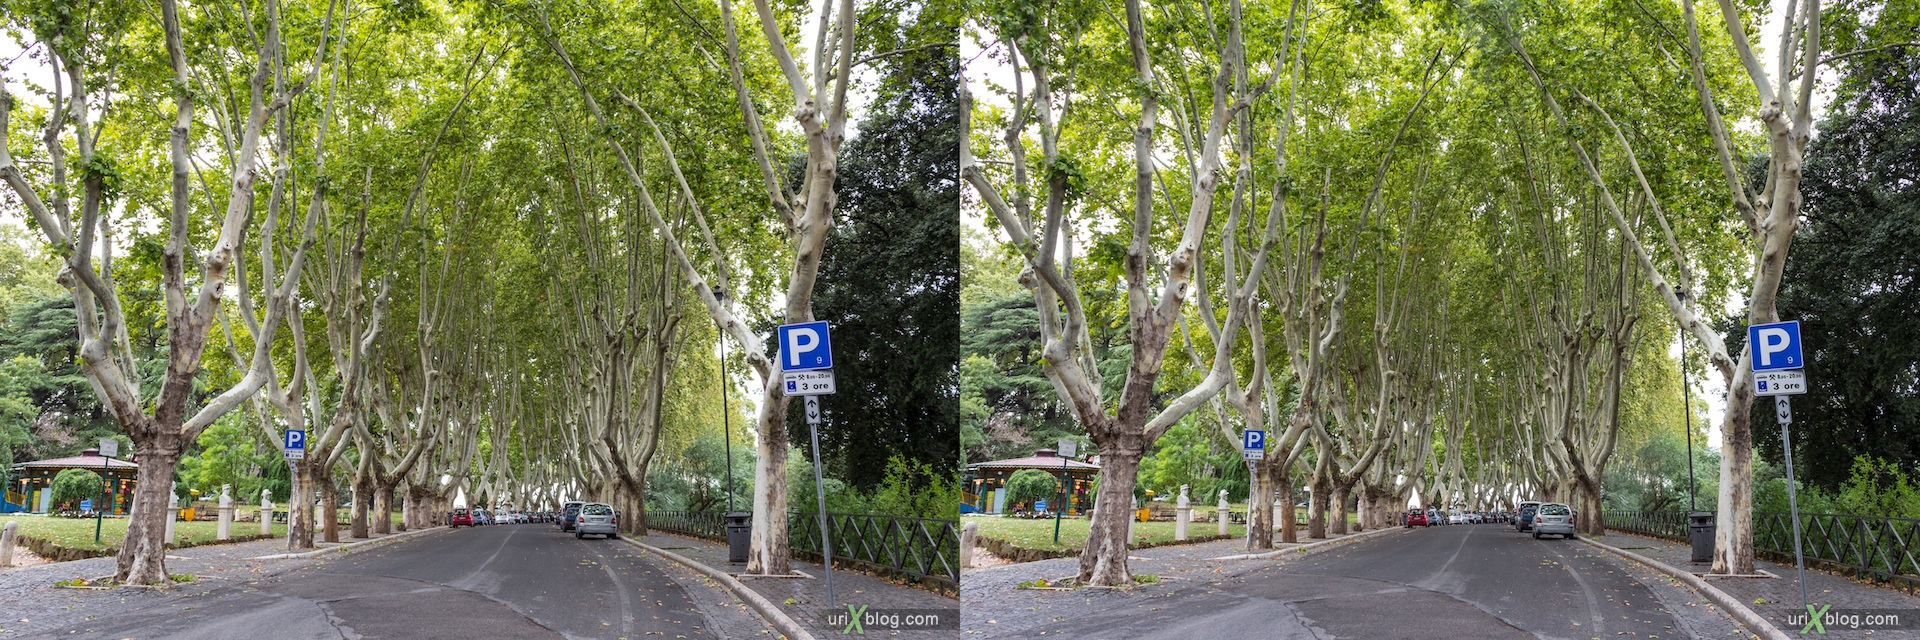 2012, Passeggiata del Gianicolo street, trees, Rome, Italy, Europe, 3D, stereo pair, cross-eyed, crossview, cross view stereo pair